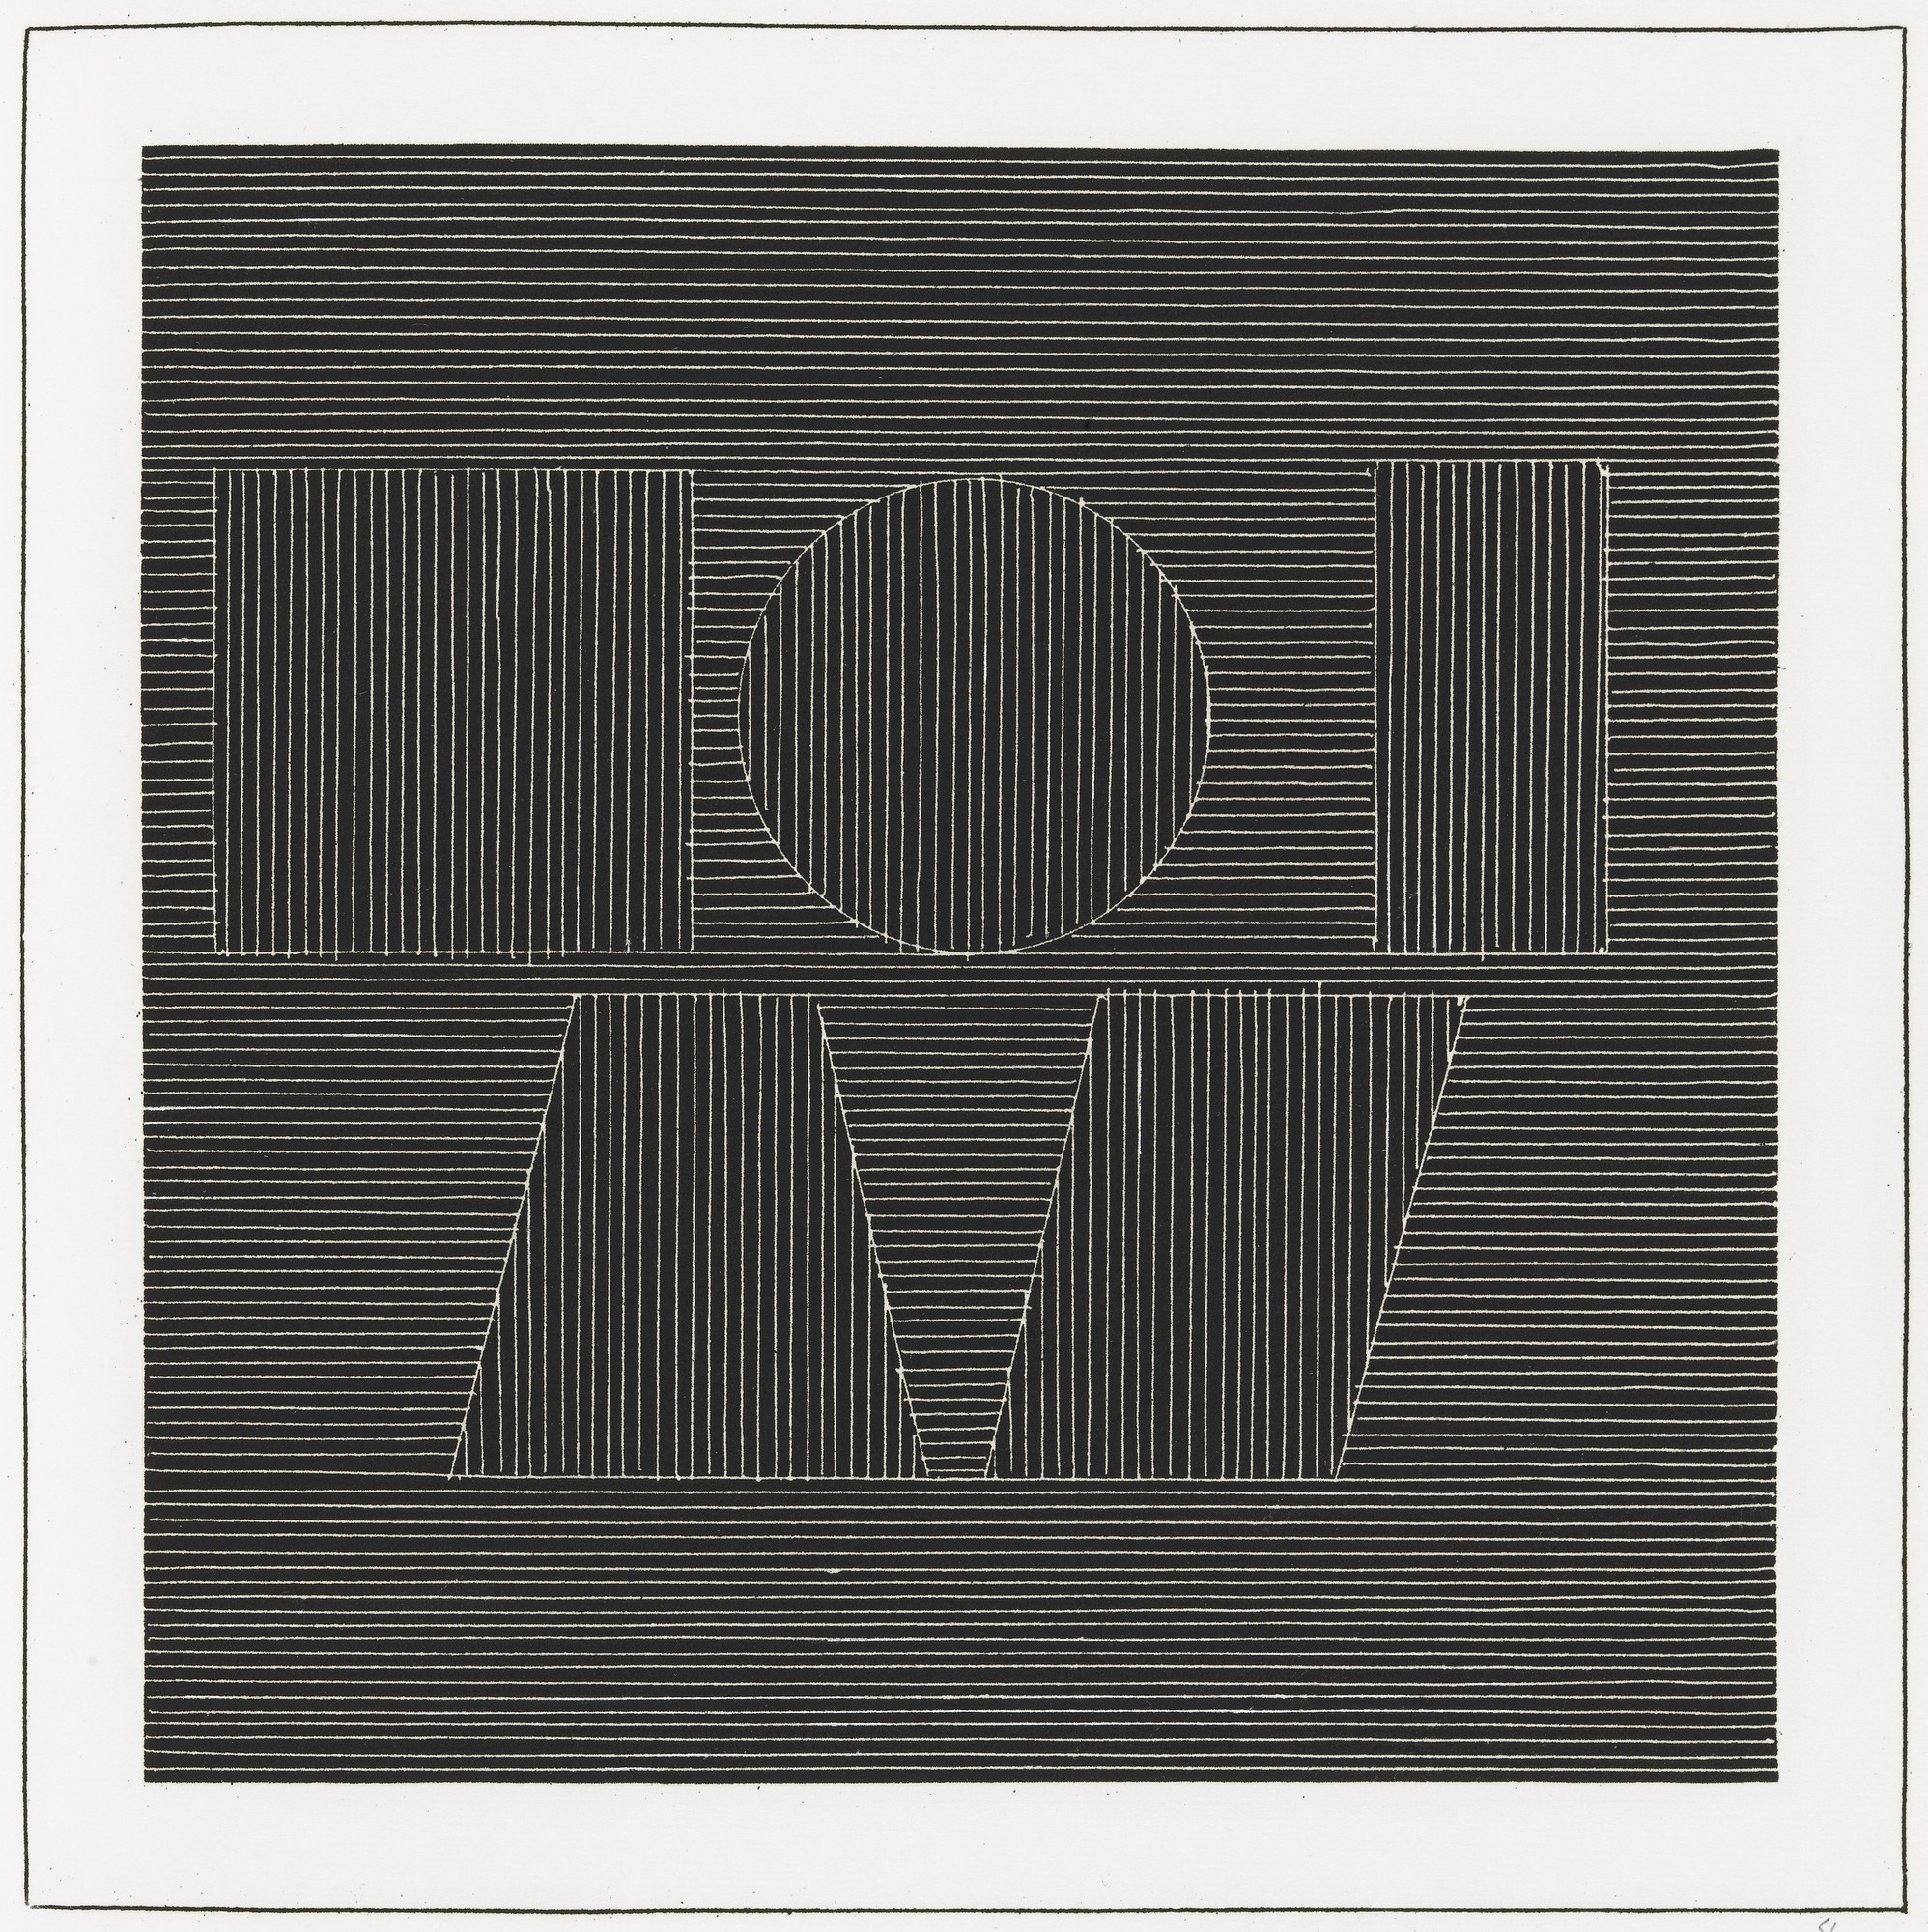 Sol LeWitt. Plate (folio 61) from Six Geometric Figures and All Their Combinations, Volume I. 1980